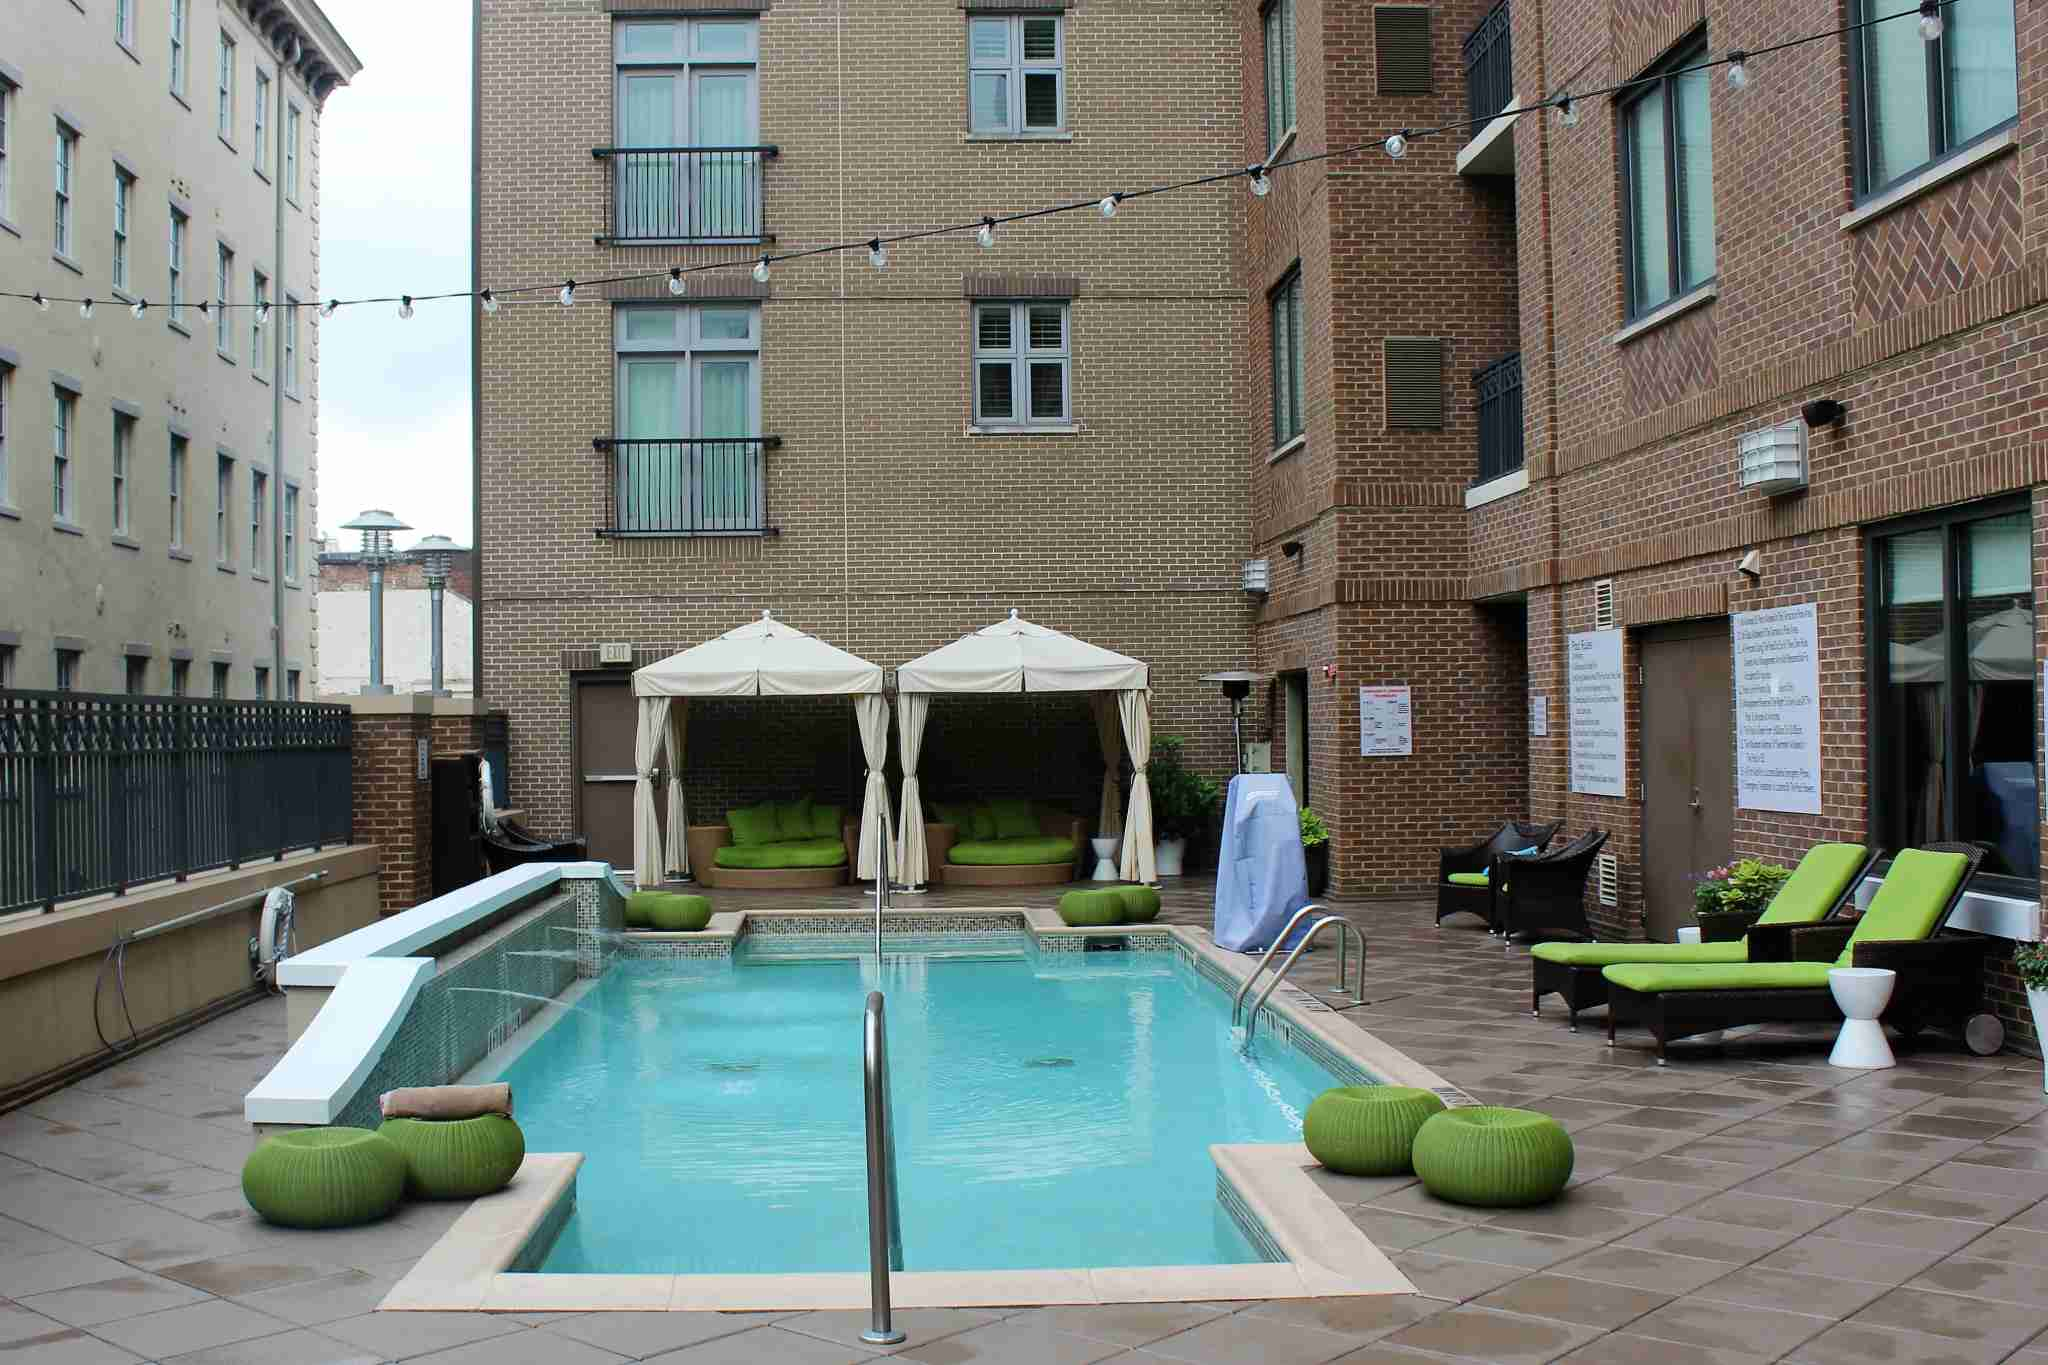 The pool was a classic rectangular design with a small water feature on the left hand side.